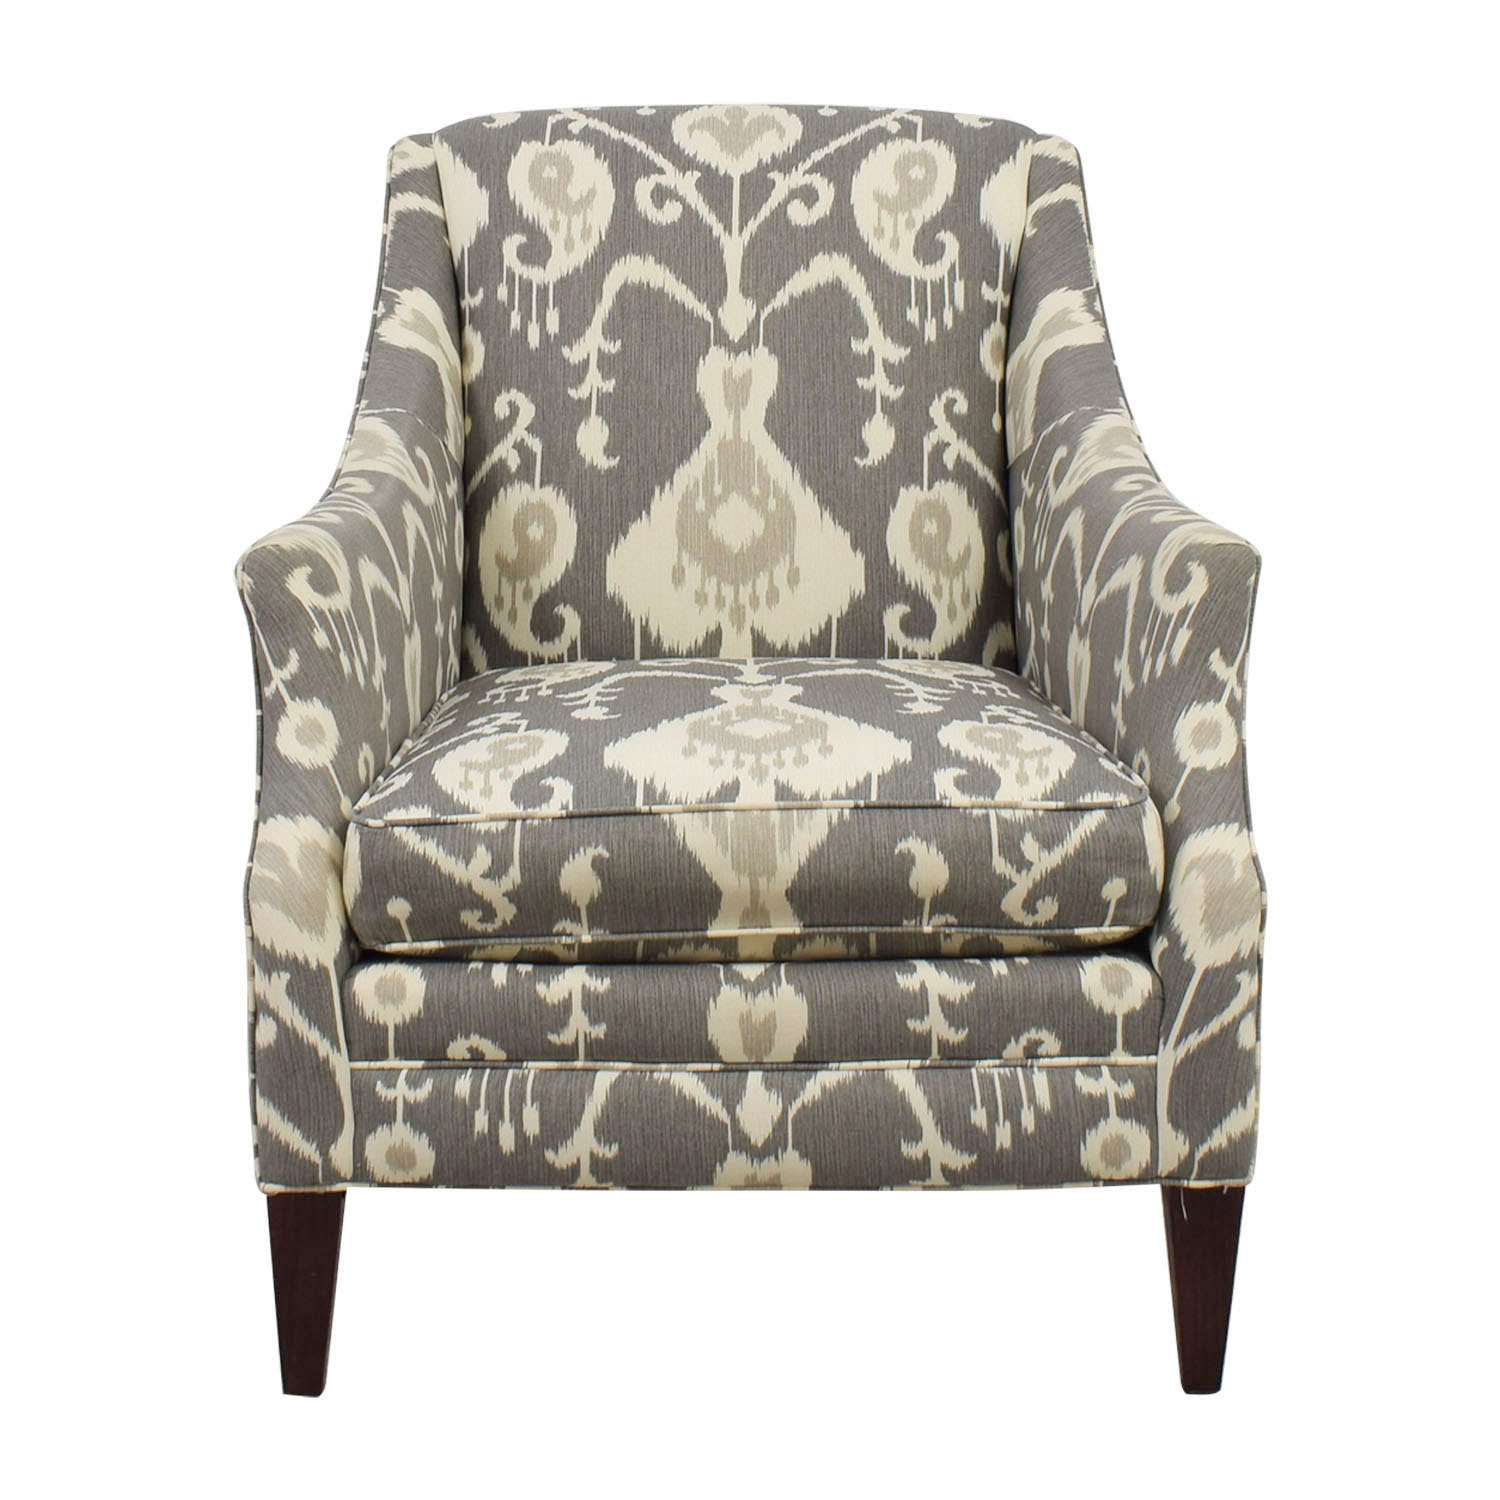 Boston Interiors Boston Interiors Gray and White Patterned Aviva Accent Chair Chairs